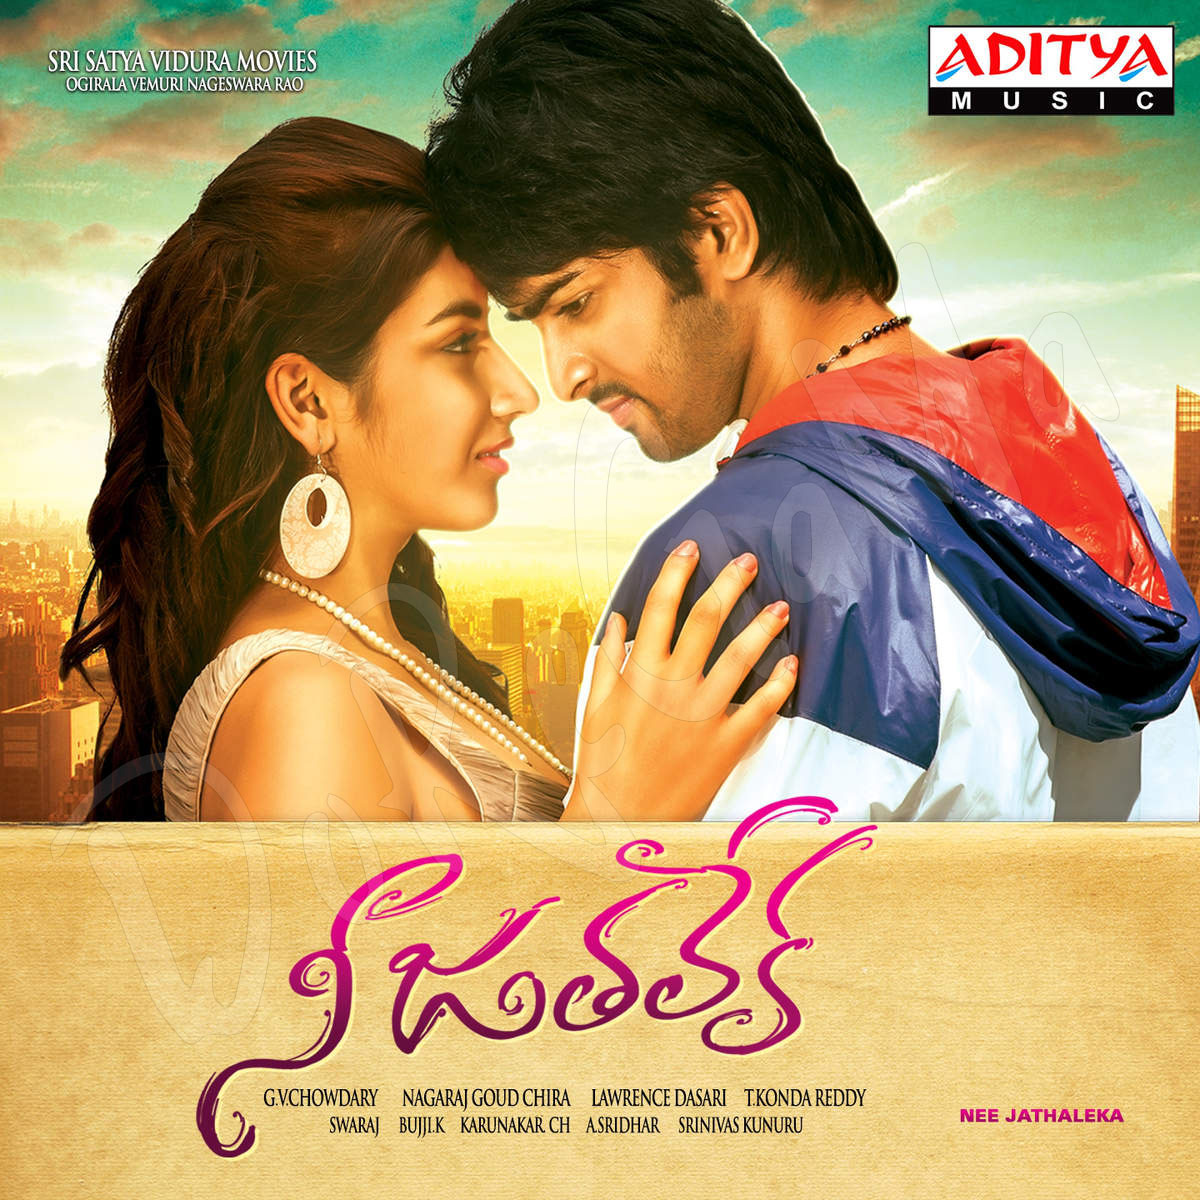 Nee-Jathaleka-Telugu-CD-FRont-Cover-Poster-Wallpaper